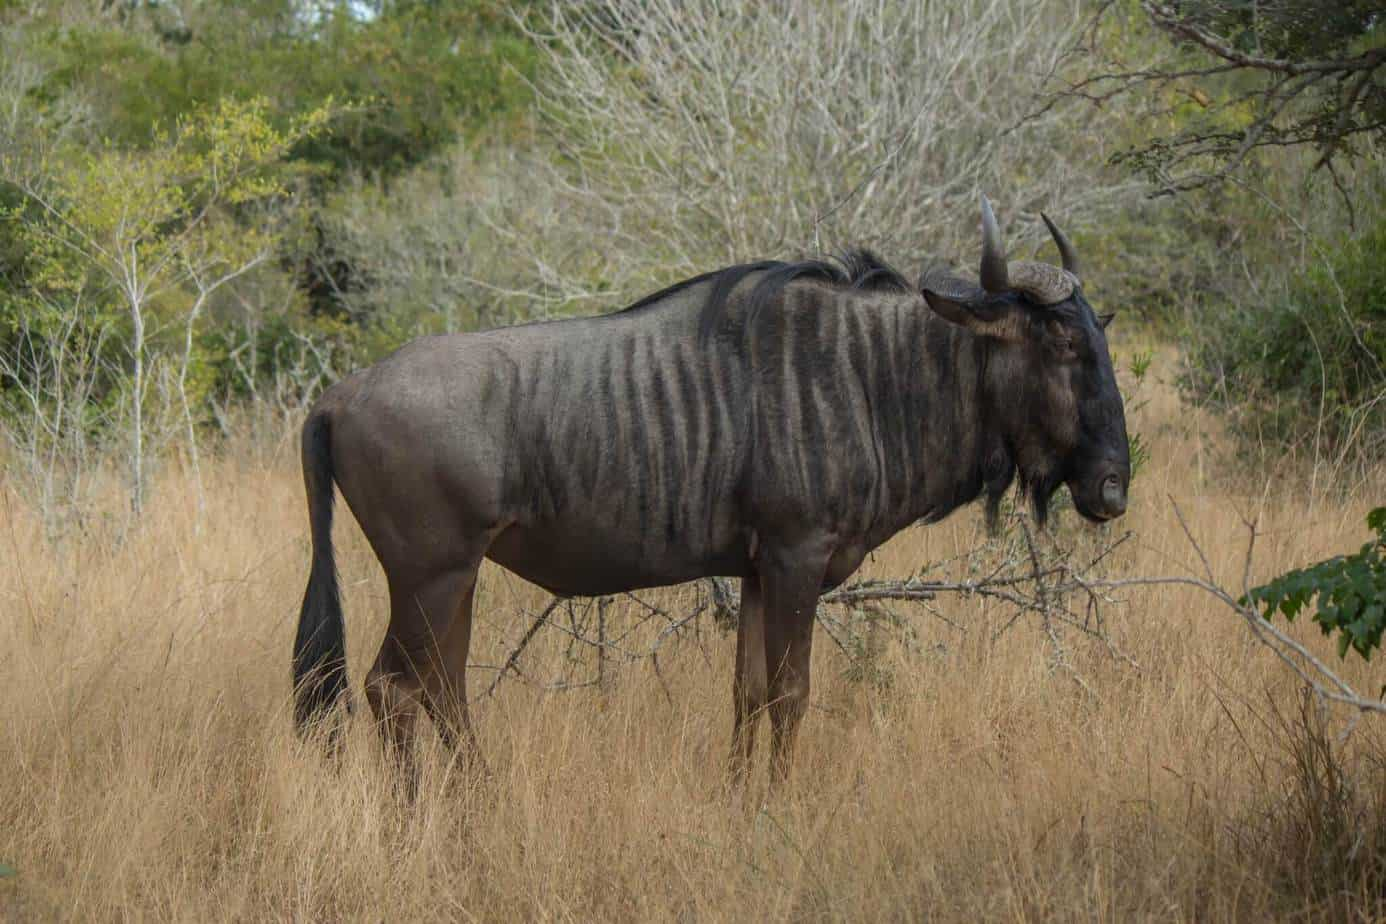 Blue Wildebeest @ Tembe Elephant Park. Photo: Håvard Rosenlund